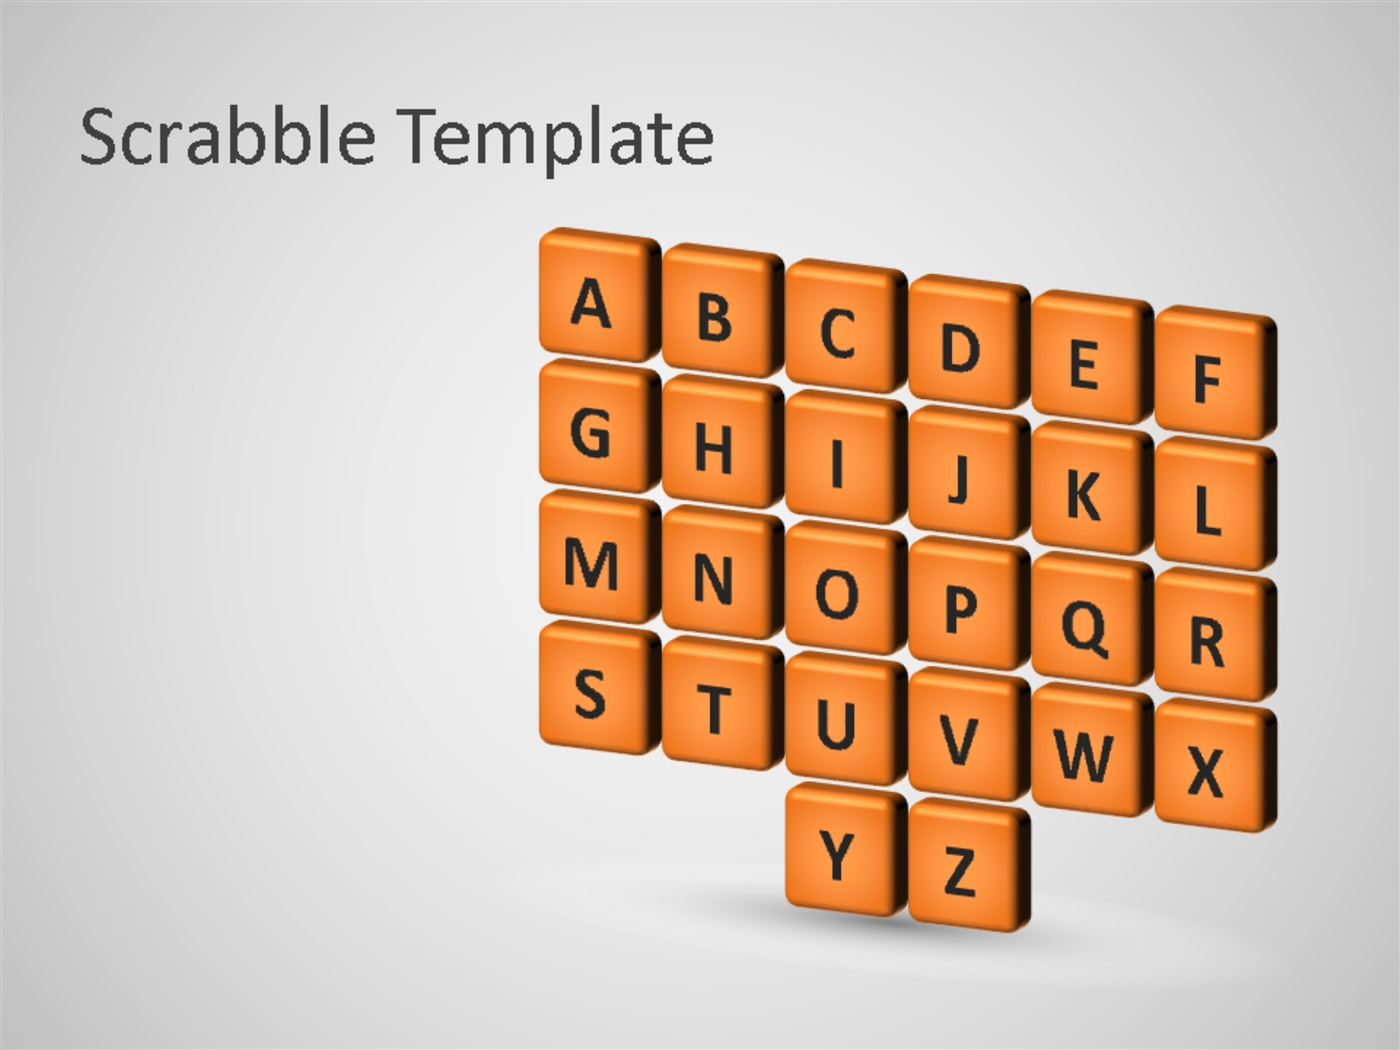 Business scrabble editable powerpoint template.